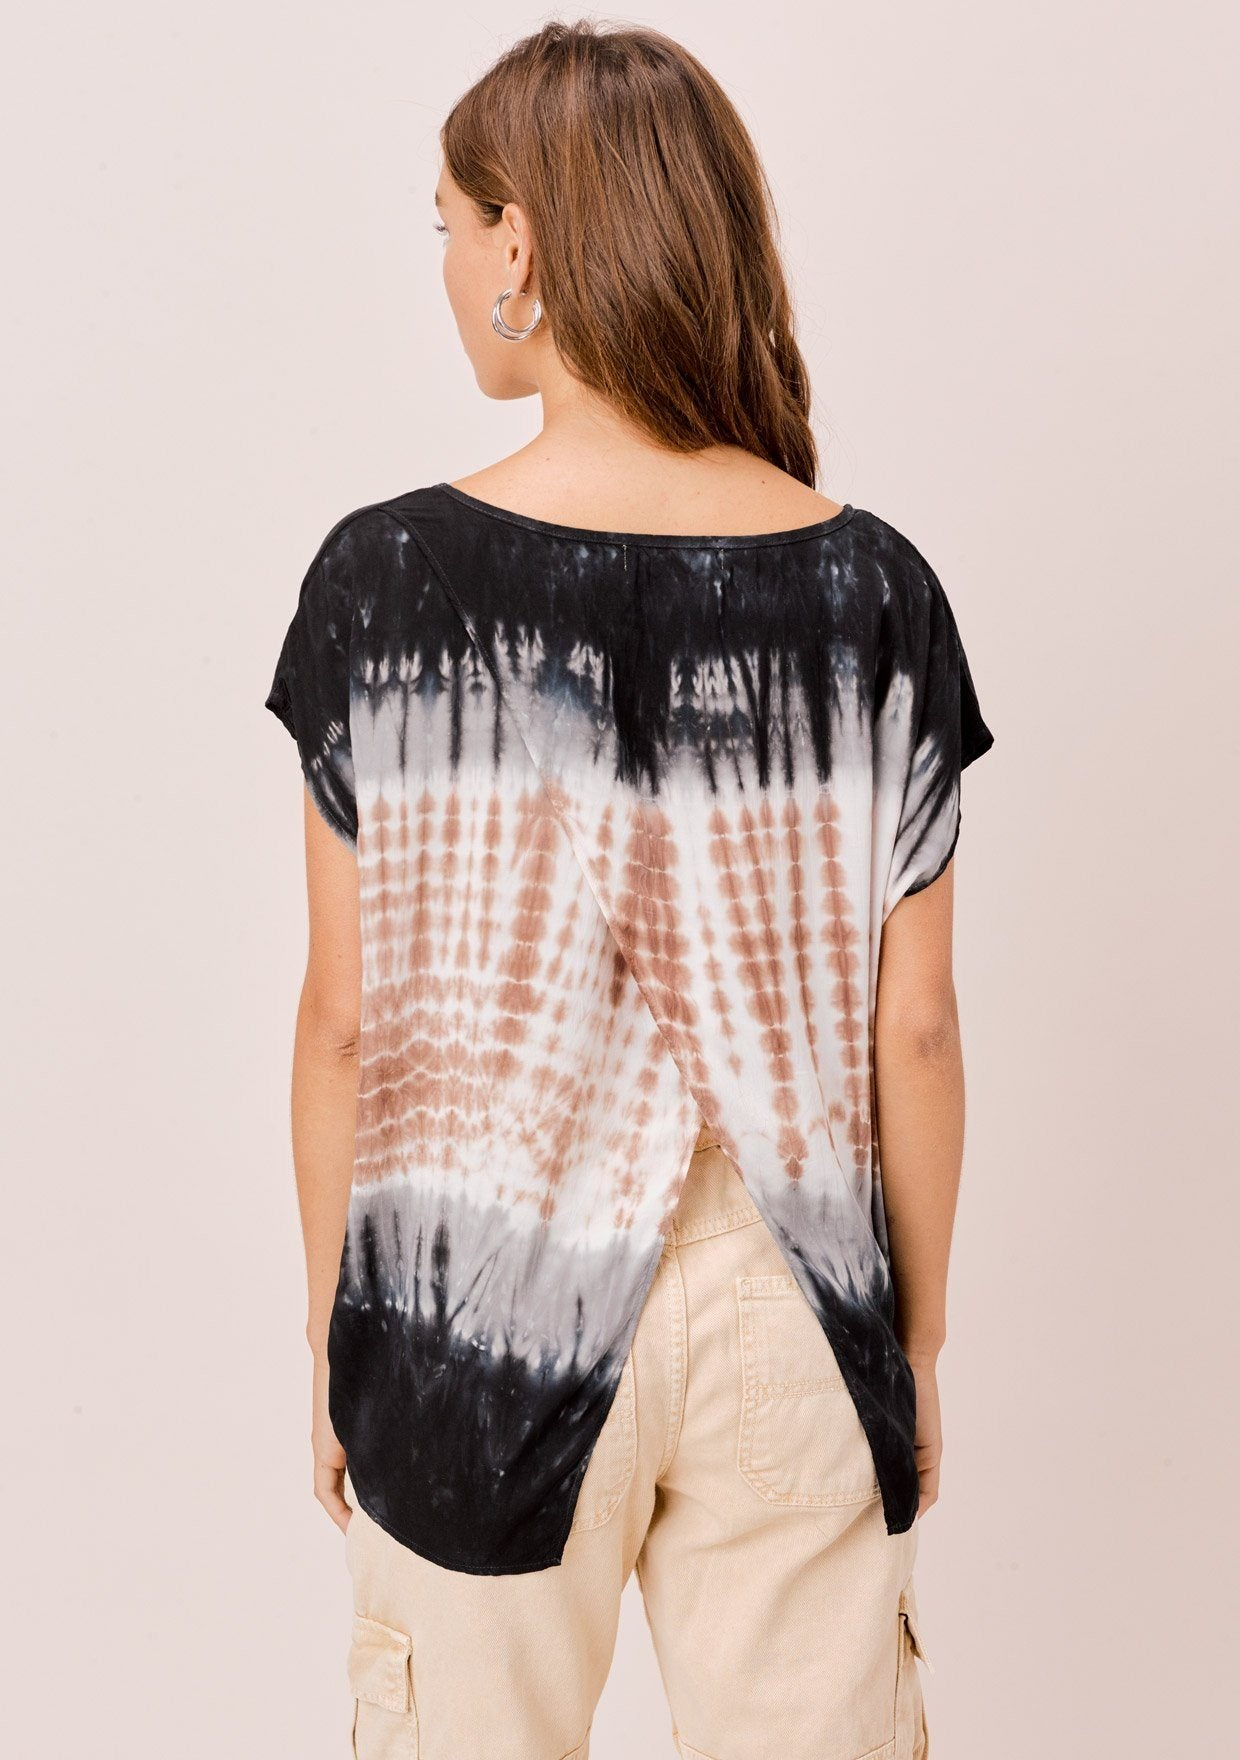 [Color: Navy/Brown/Beige] Lovestitch short sleeve, tie-dye top with diagonal seam, open back detail.